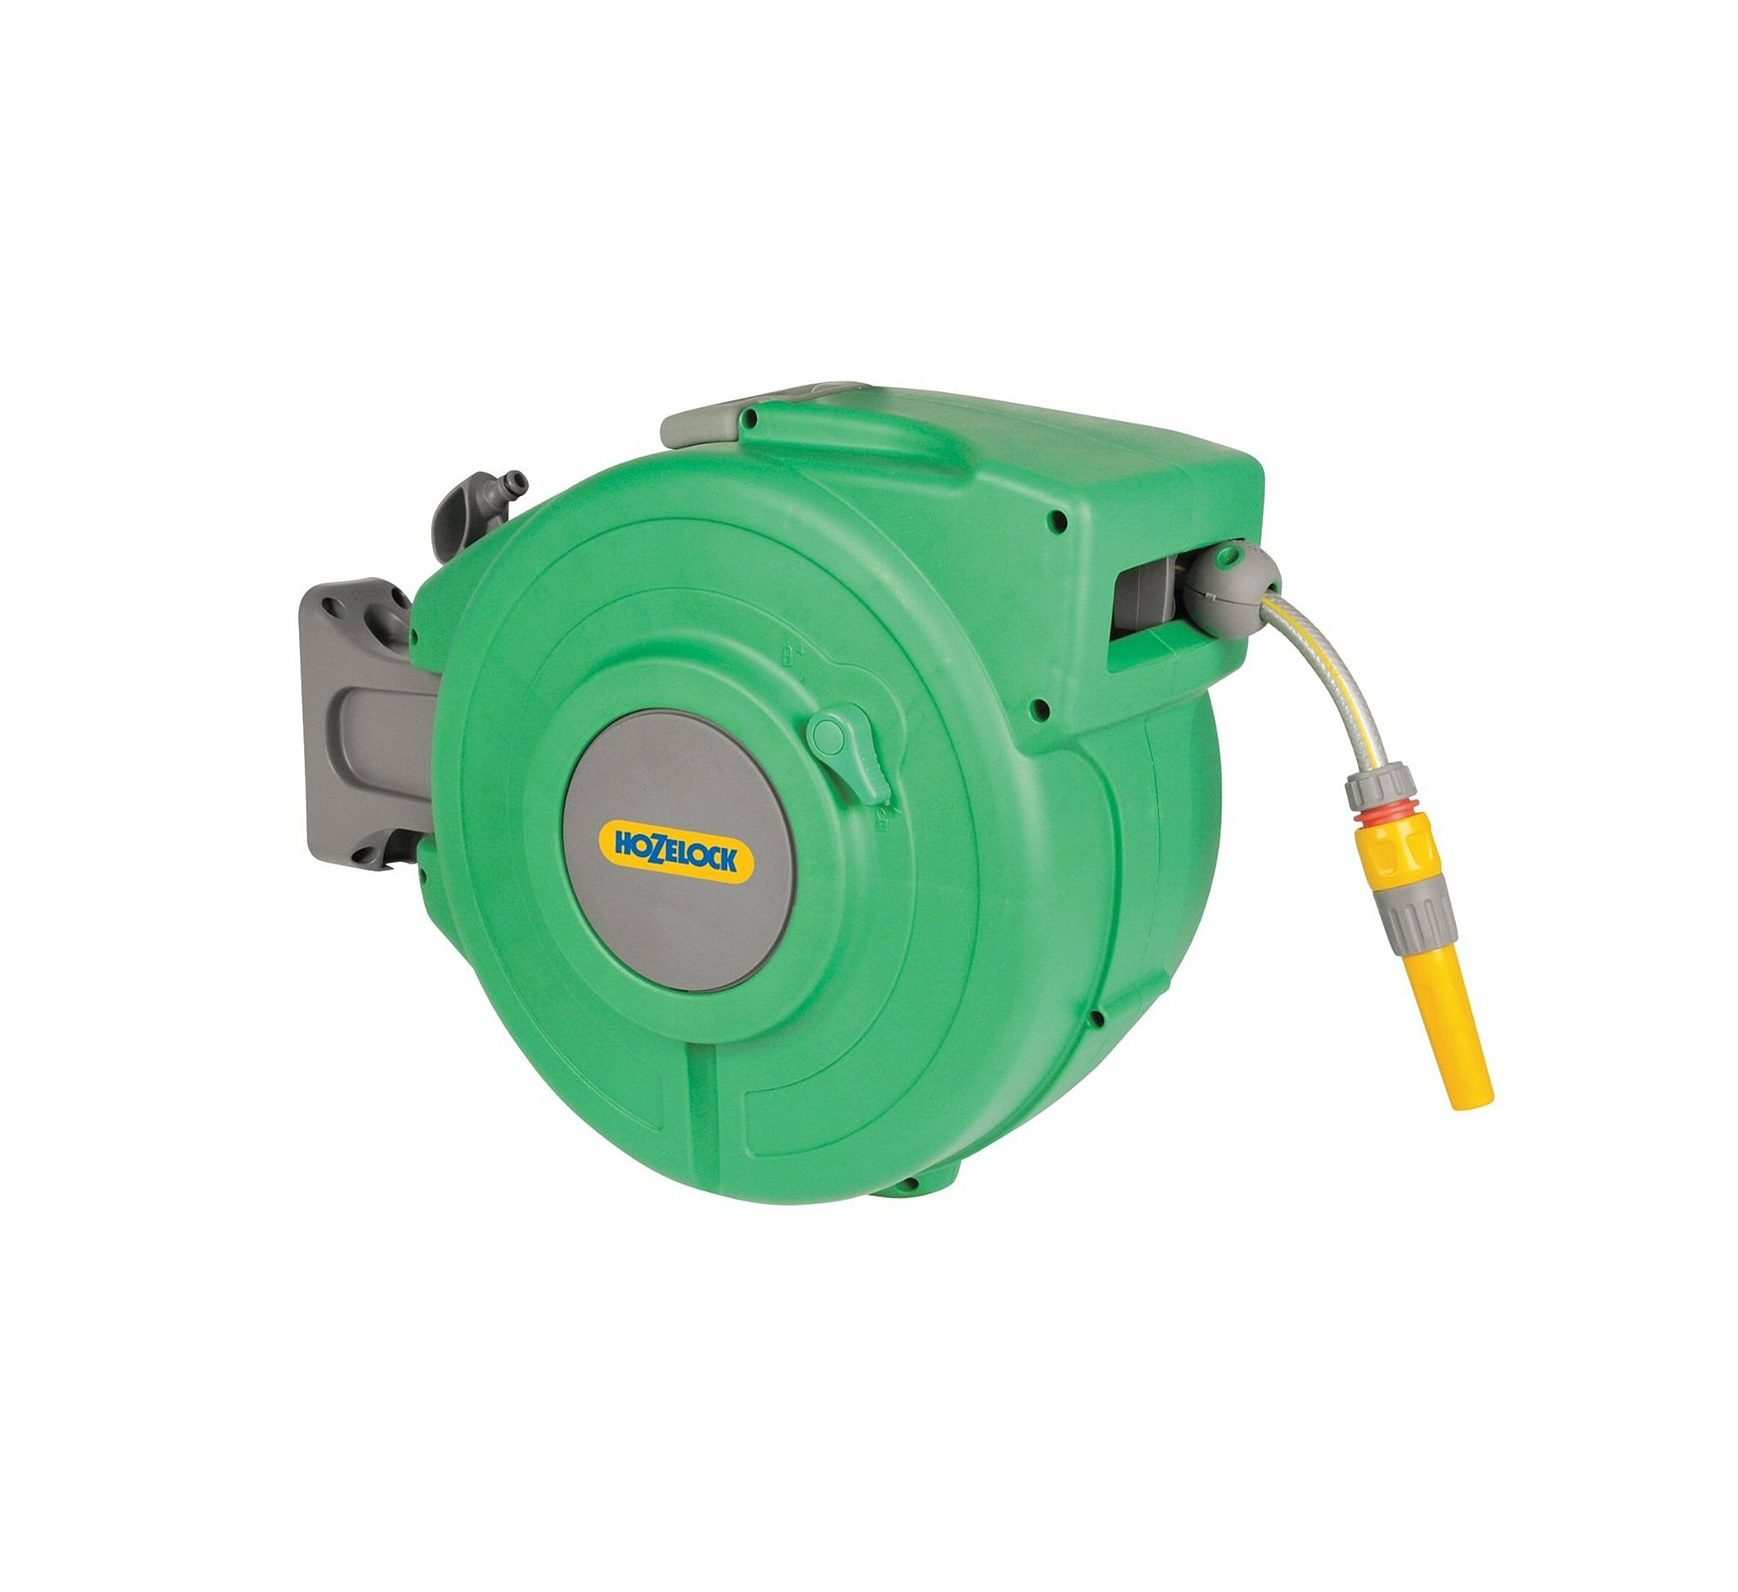 Hozelock Auto Reel 25m with Hose - 2385